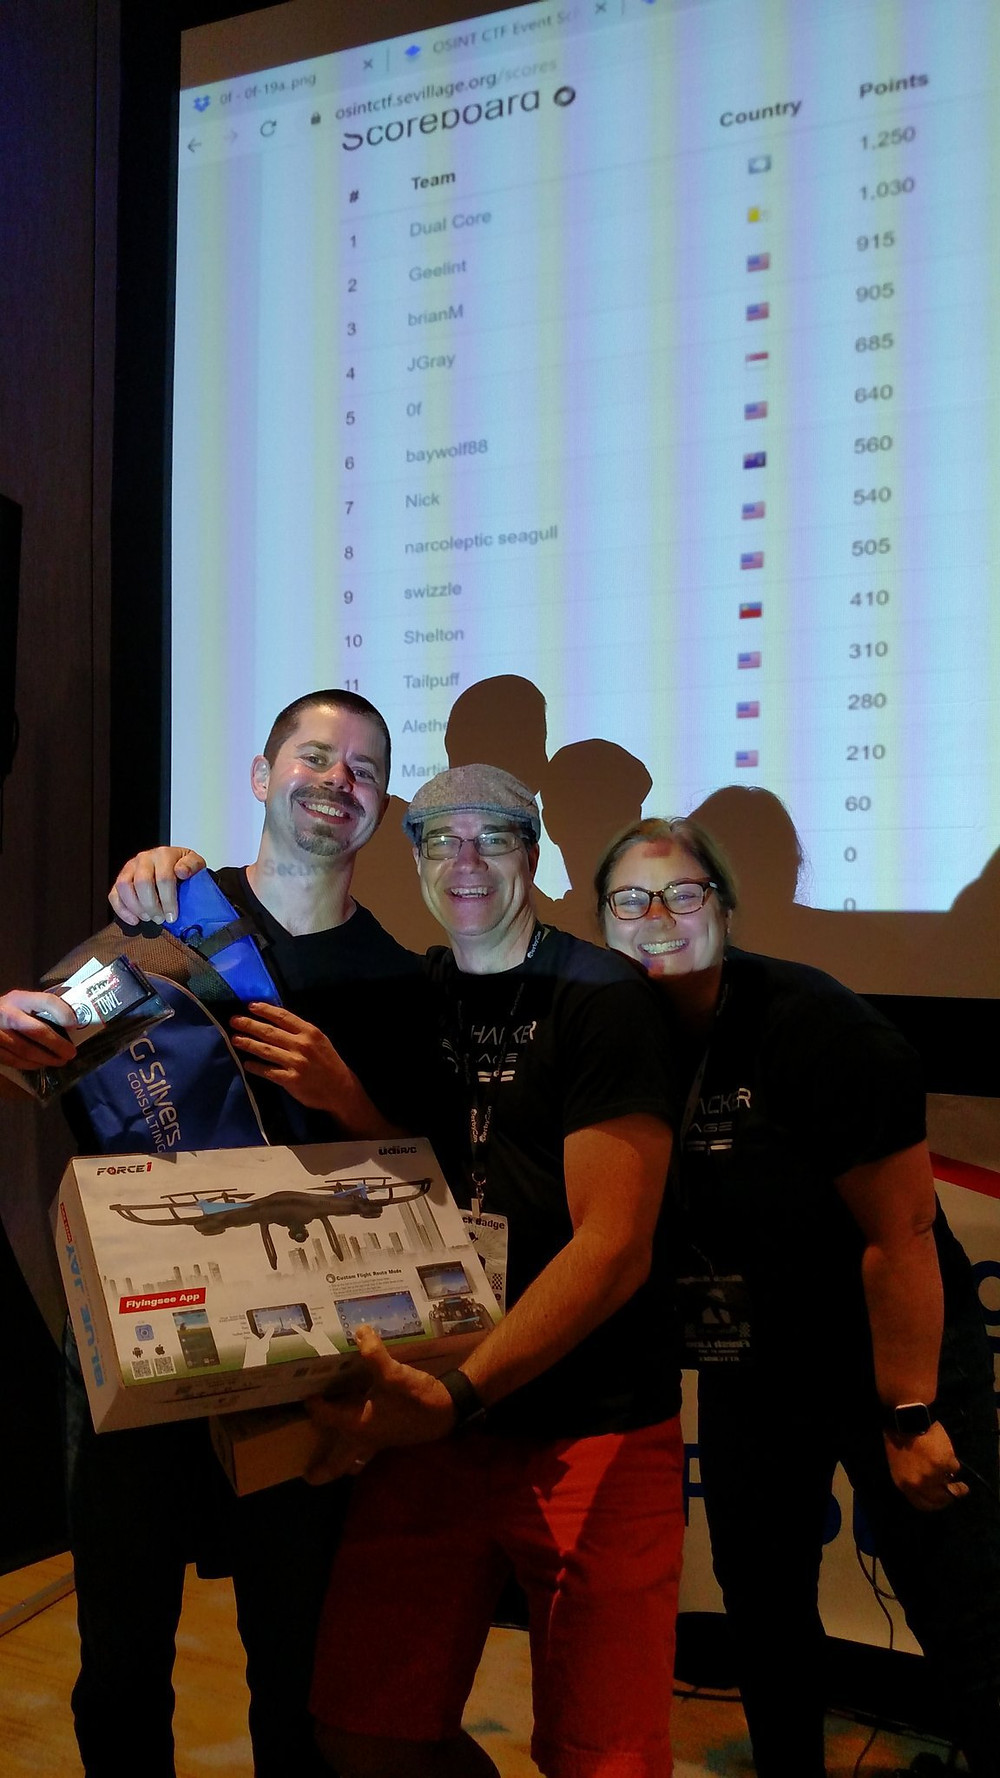 All the swag! Chris and Kris Silvers with OSINT CTF winner Dual Core